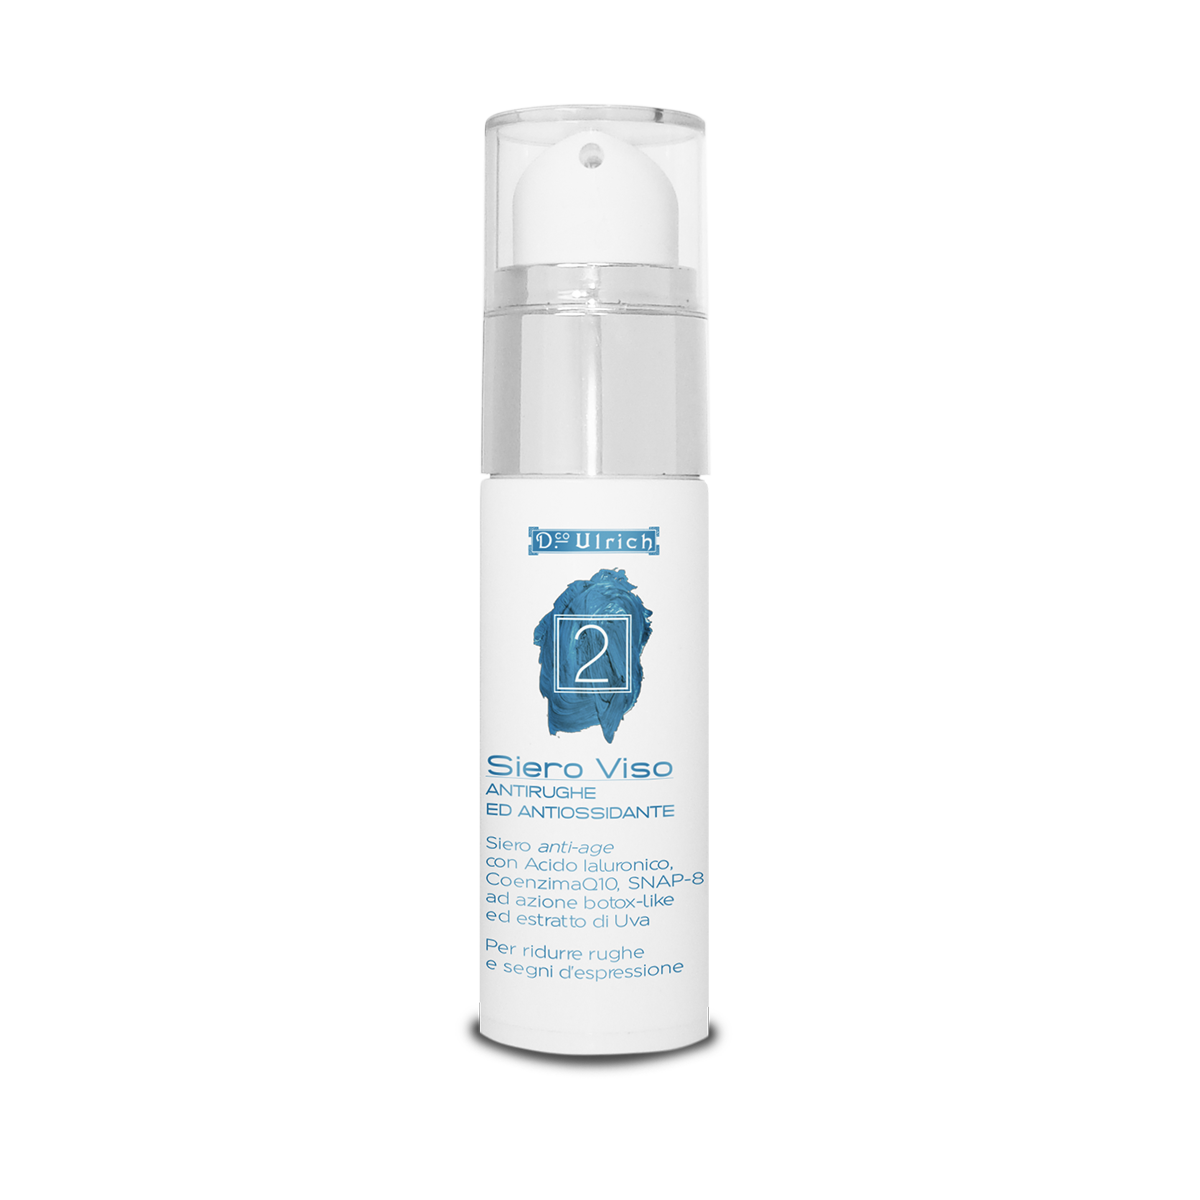 SIERO VISO 30 ML ANTI-AGE EFFETTO BOTOX LIKE CON ACIDO IALURONICO - COENZIMA Q10 - SNAP - 8